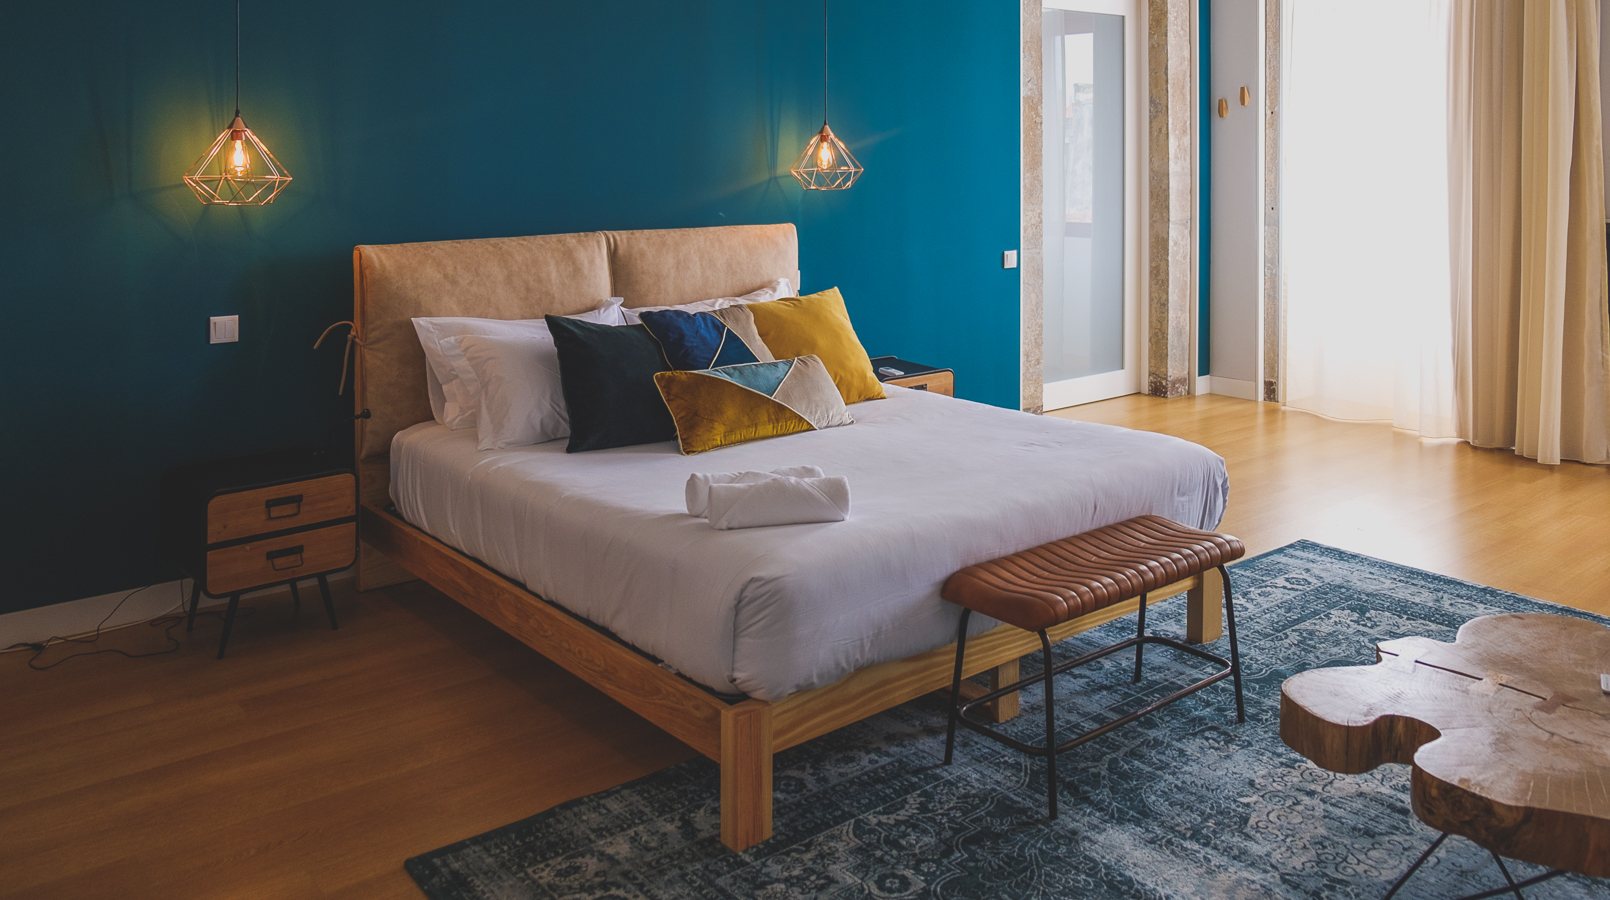 Le Fashionaire Selina: there's a new hotel to know in Porto selina porto hotel bed bedroom blue pillows 1538F EN